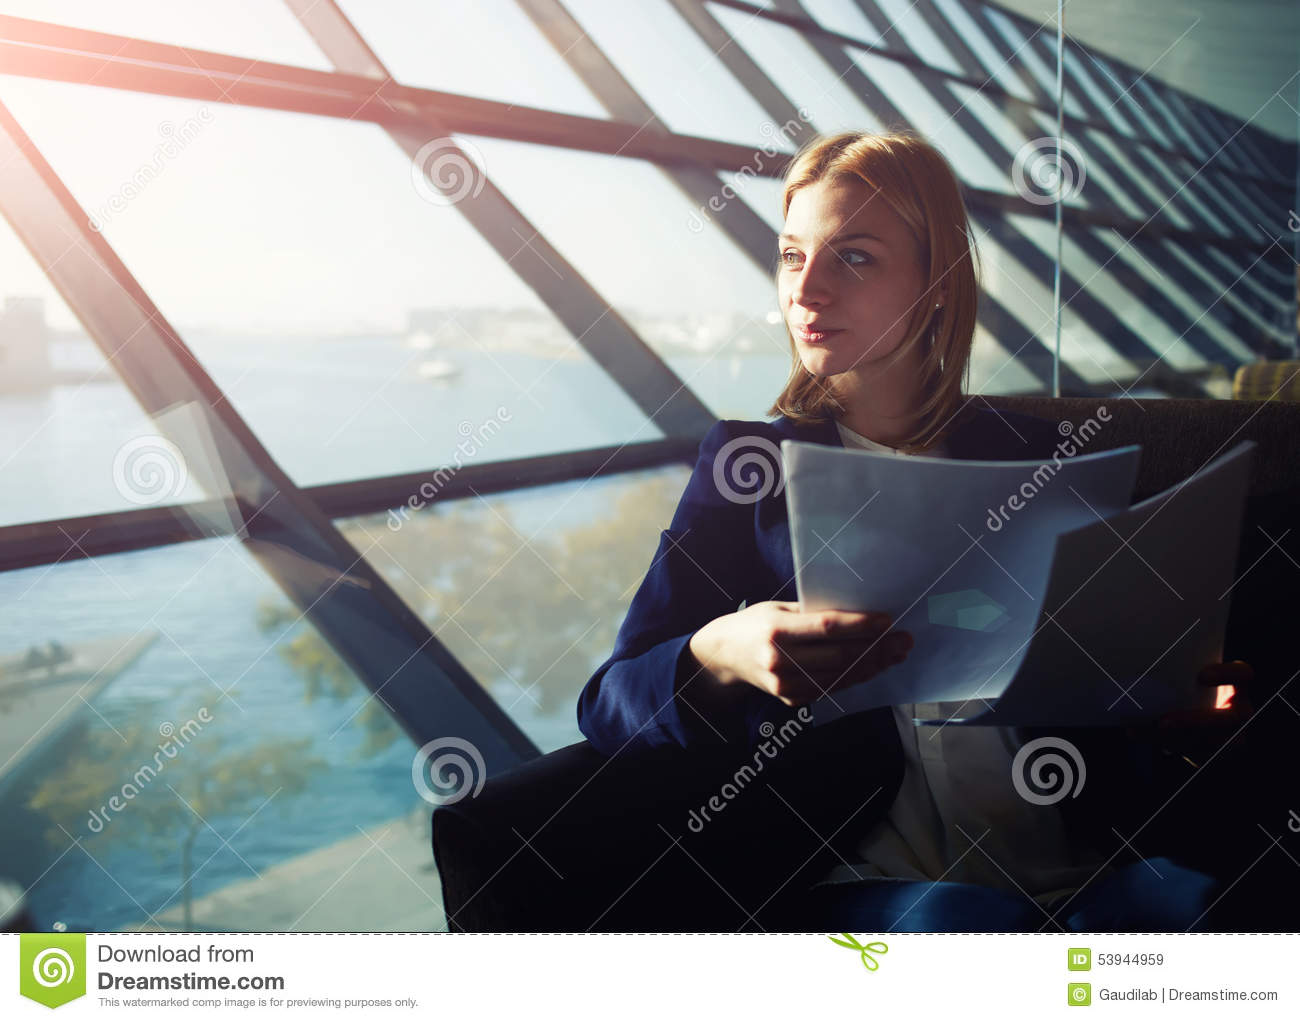 dont look out the window essay Look out the window is look+[out the window] you look where out of window q did you look out the window a yes, sir q hi, i don't want to add any general comments to this long discussion i just want to add a very brief idiomatic note about trees.